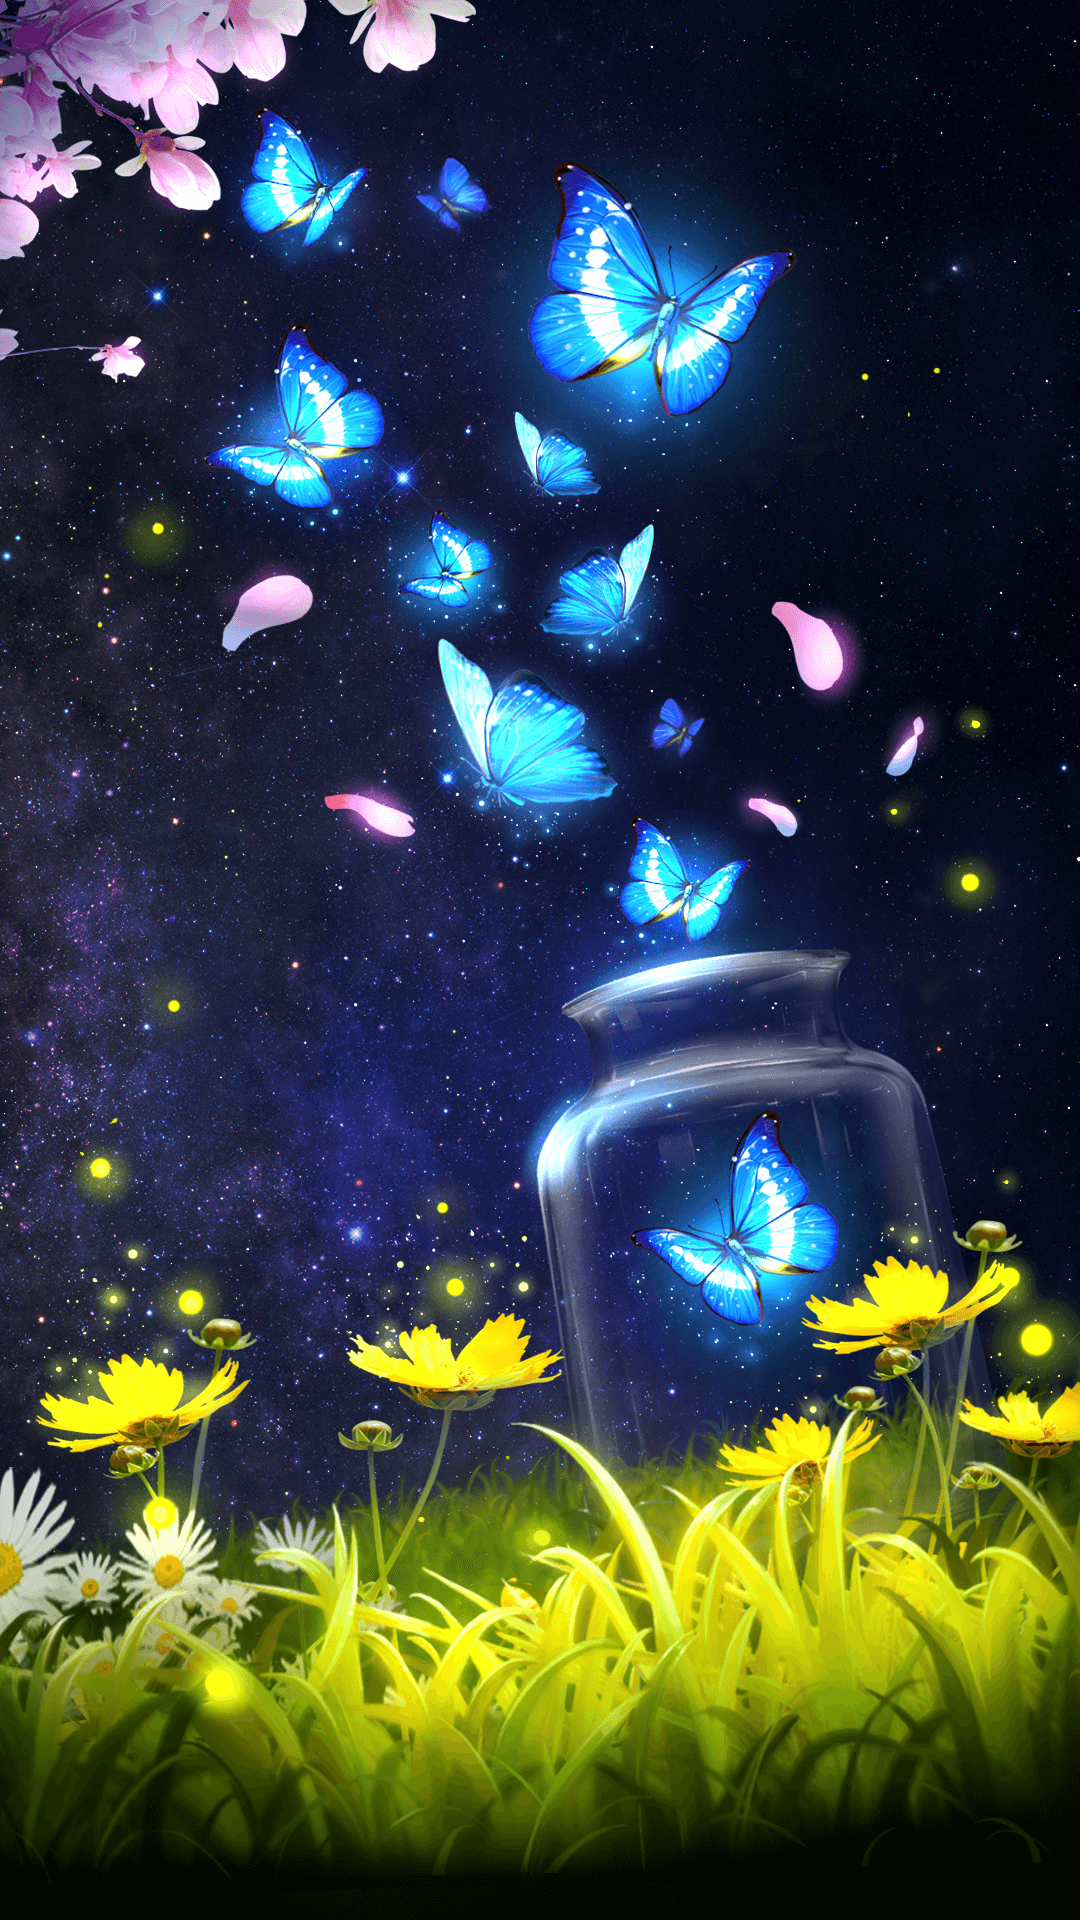 android live wallpaperbackgroundshiny blue butterfly live wallpaper with starry sky as background